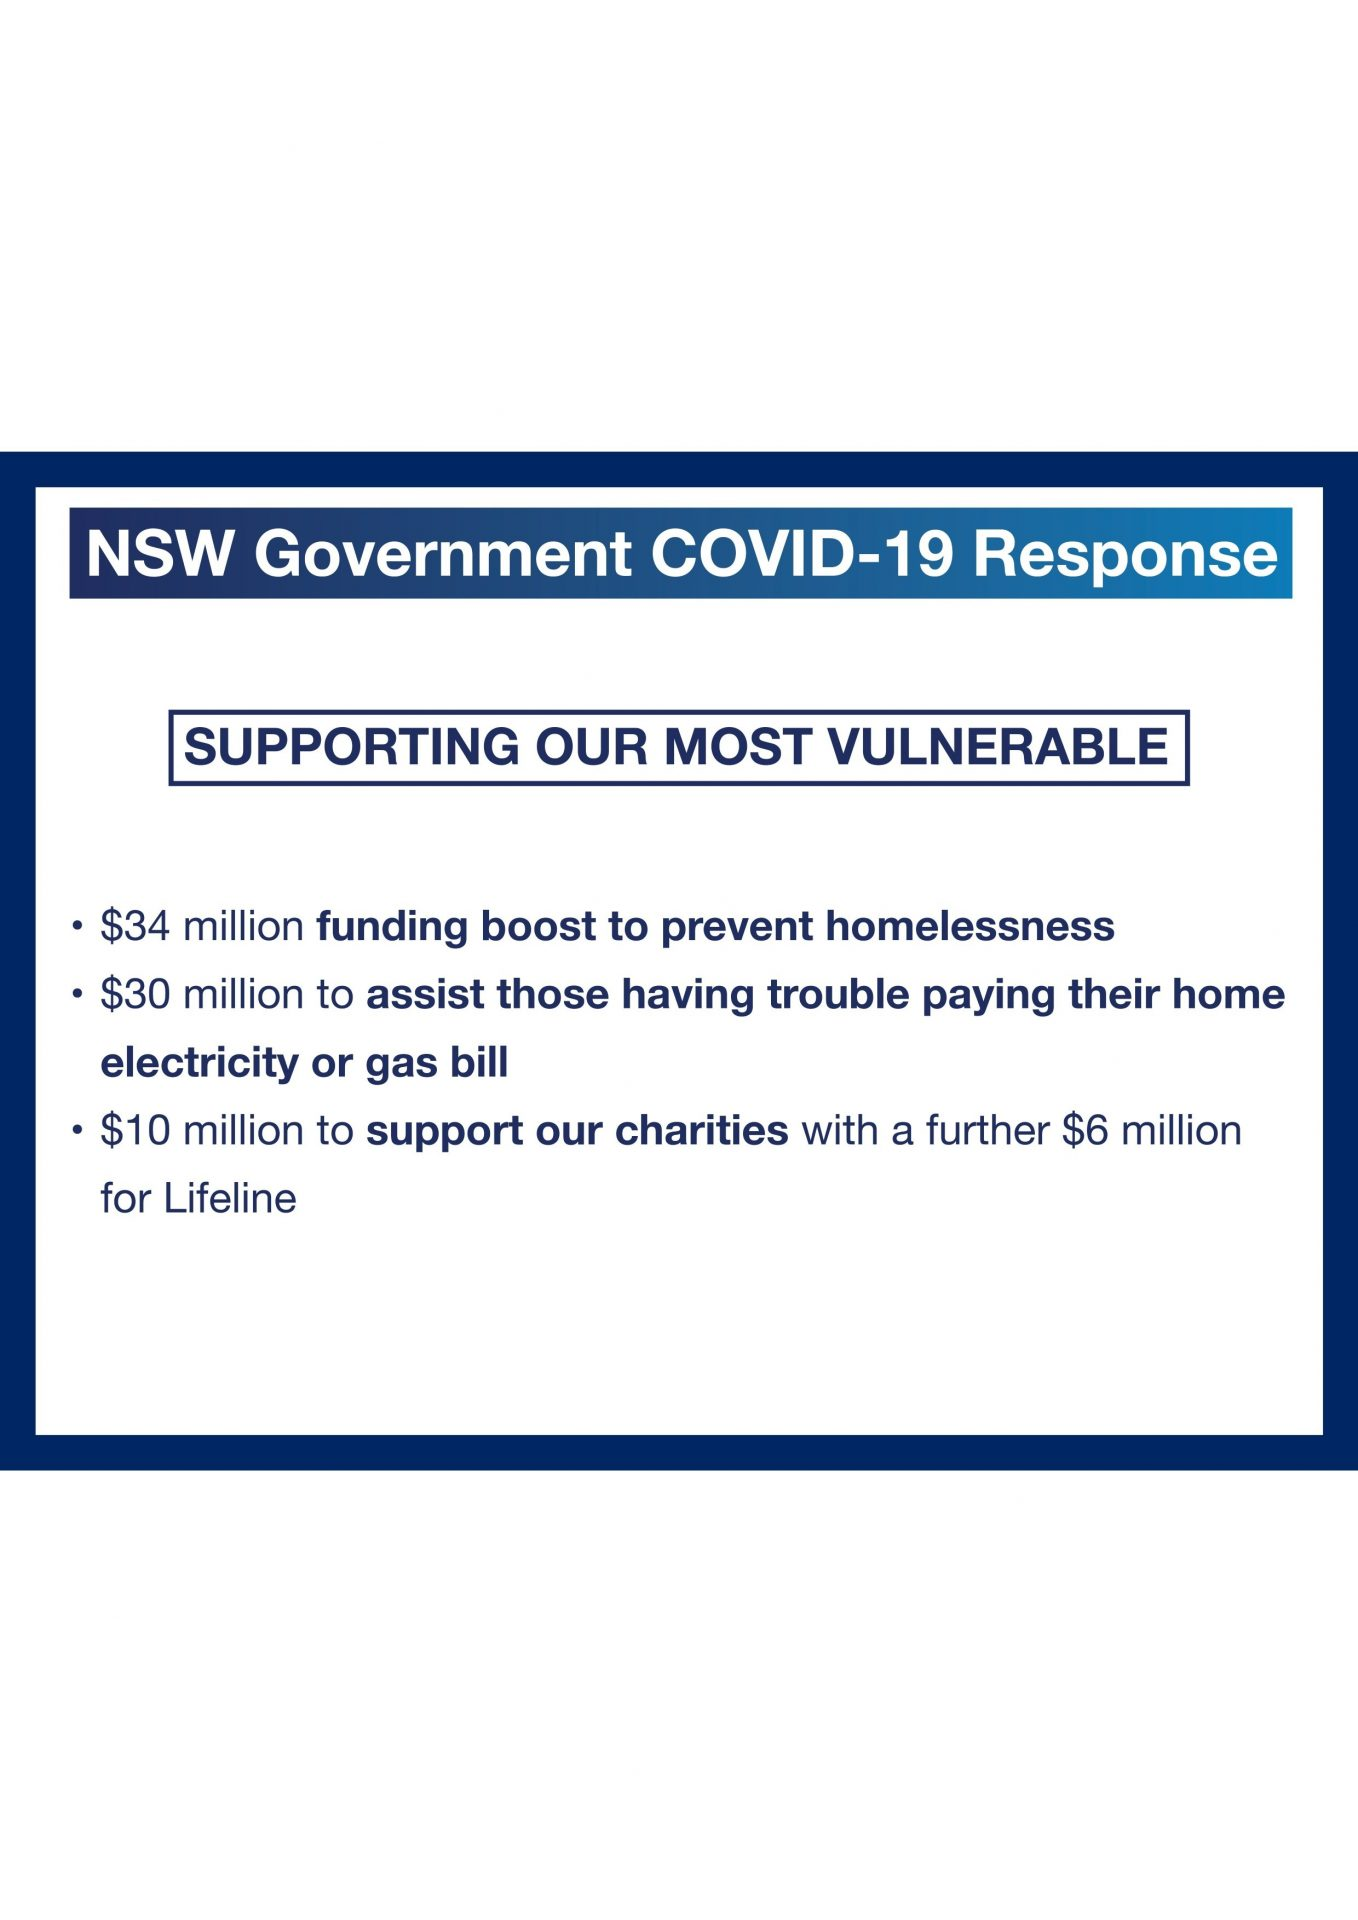 NSW Government - Supporting our most vulnerable